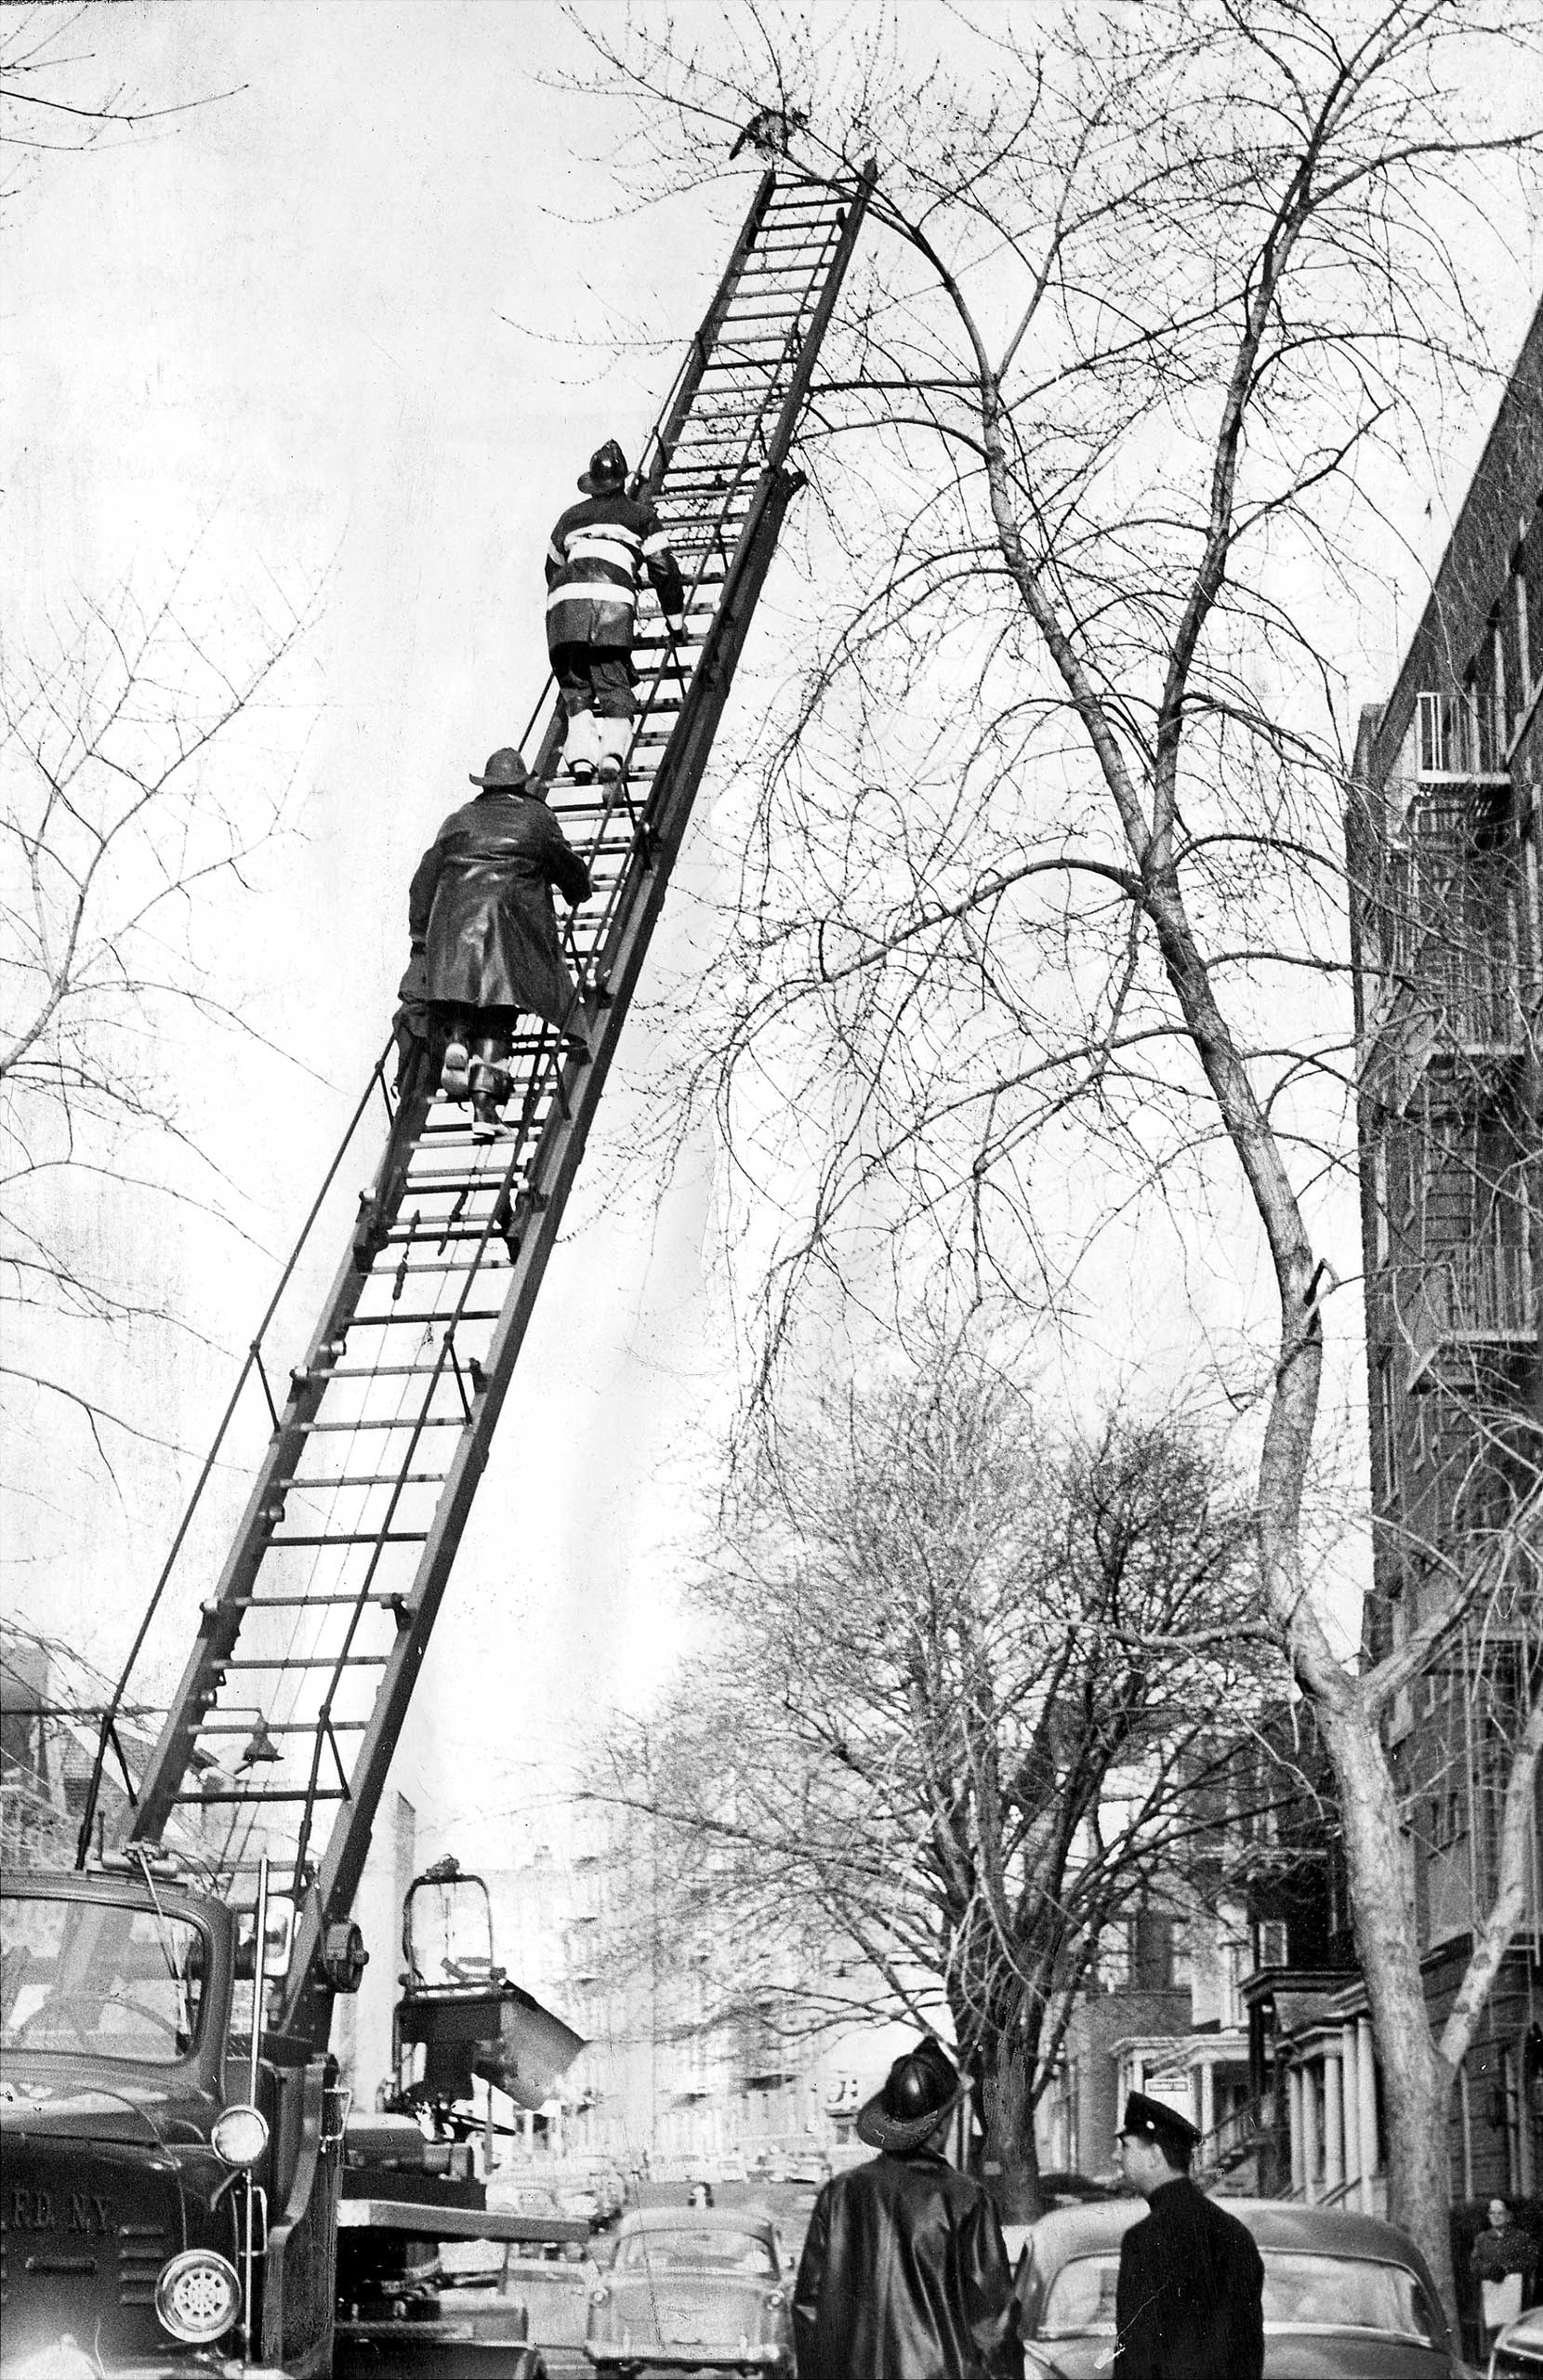 Firefighters in the Bronx borough of New York rescue a cat that was stuck in a tree for 26 hours in 1962.